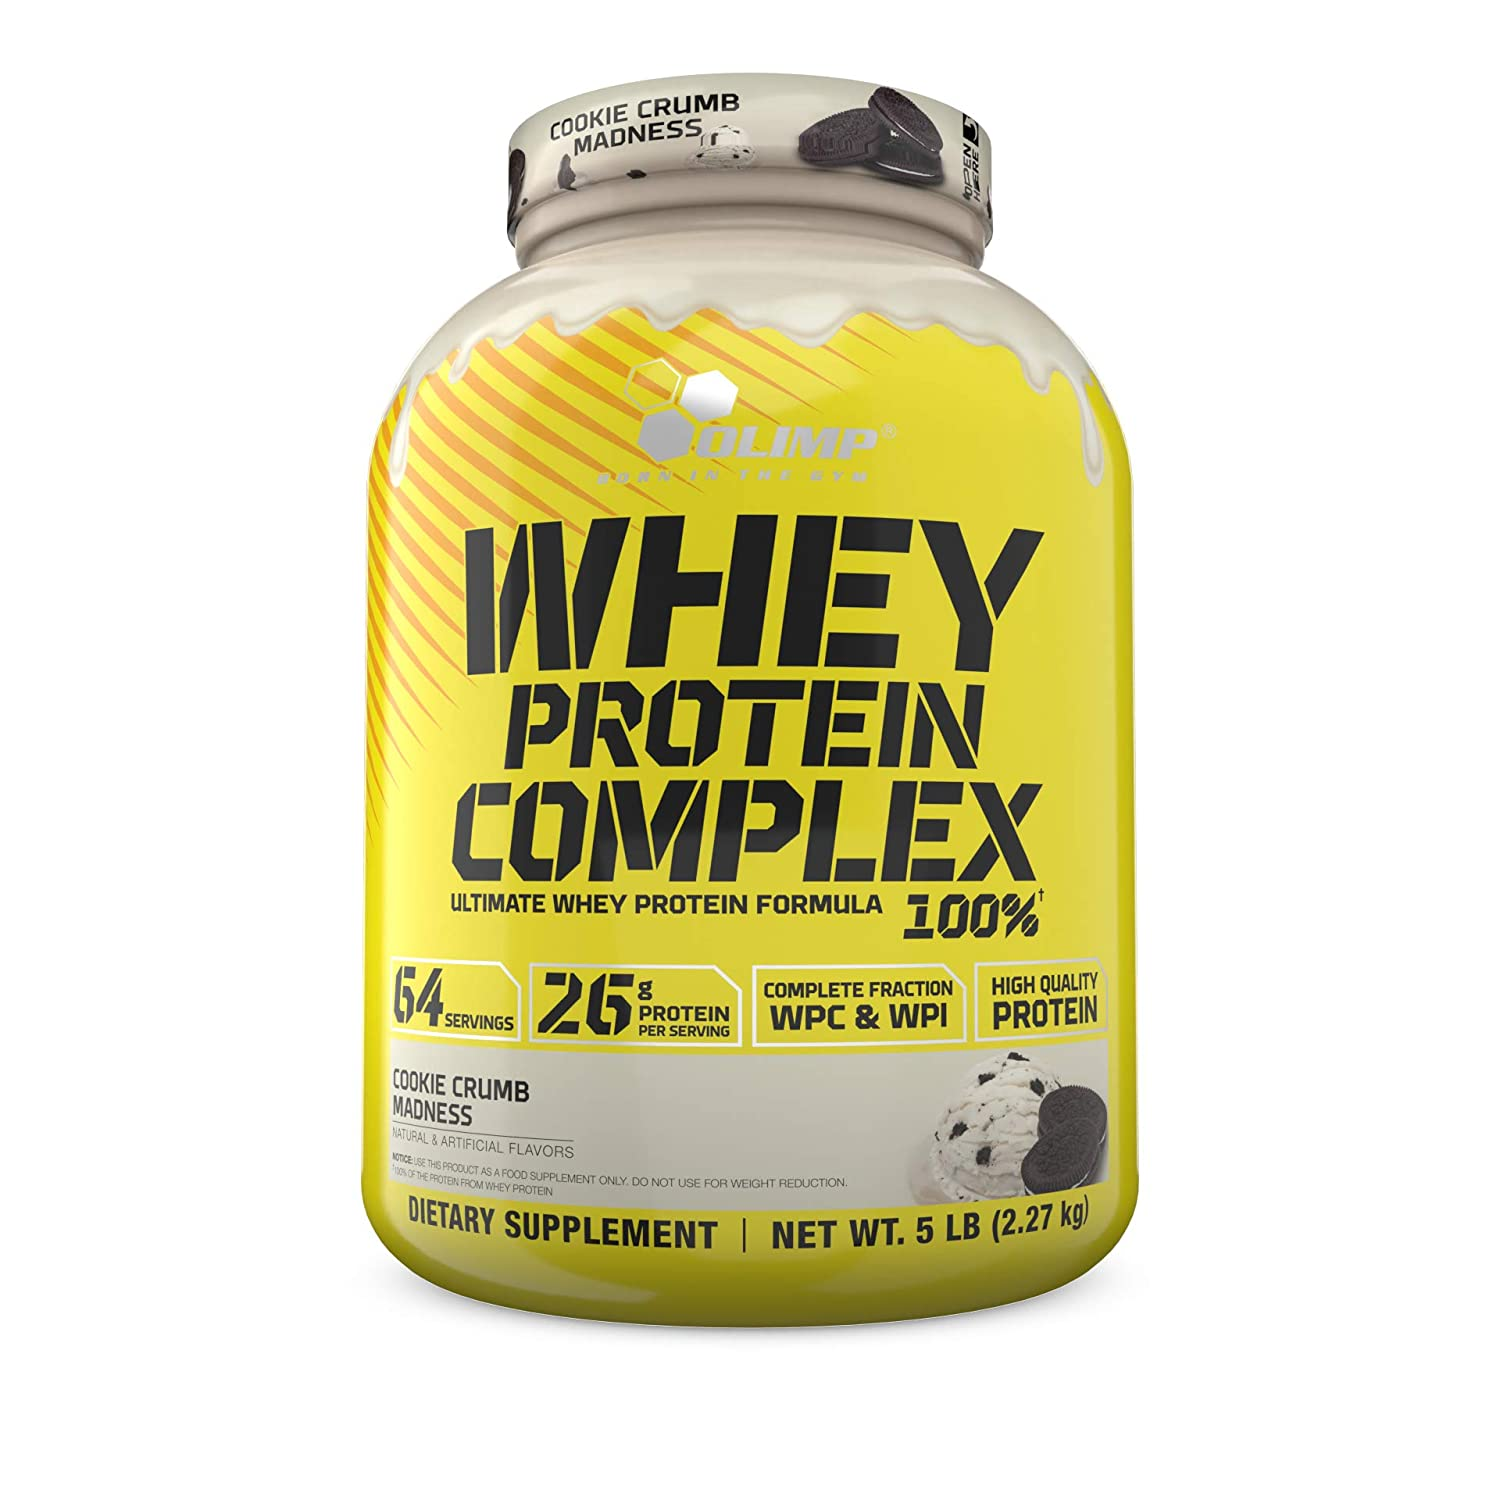 Olimp Whey Protein Complex 100 Powder – Pack of 5 lb – 64 Servings – Cookie Crumb Madness – Amino Acids – Mass Building – Perfect for Cocktails, Smoothies